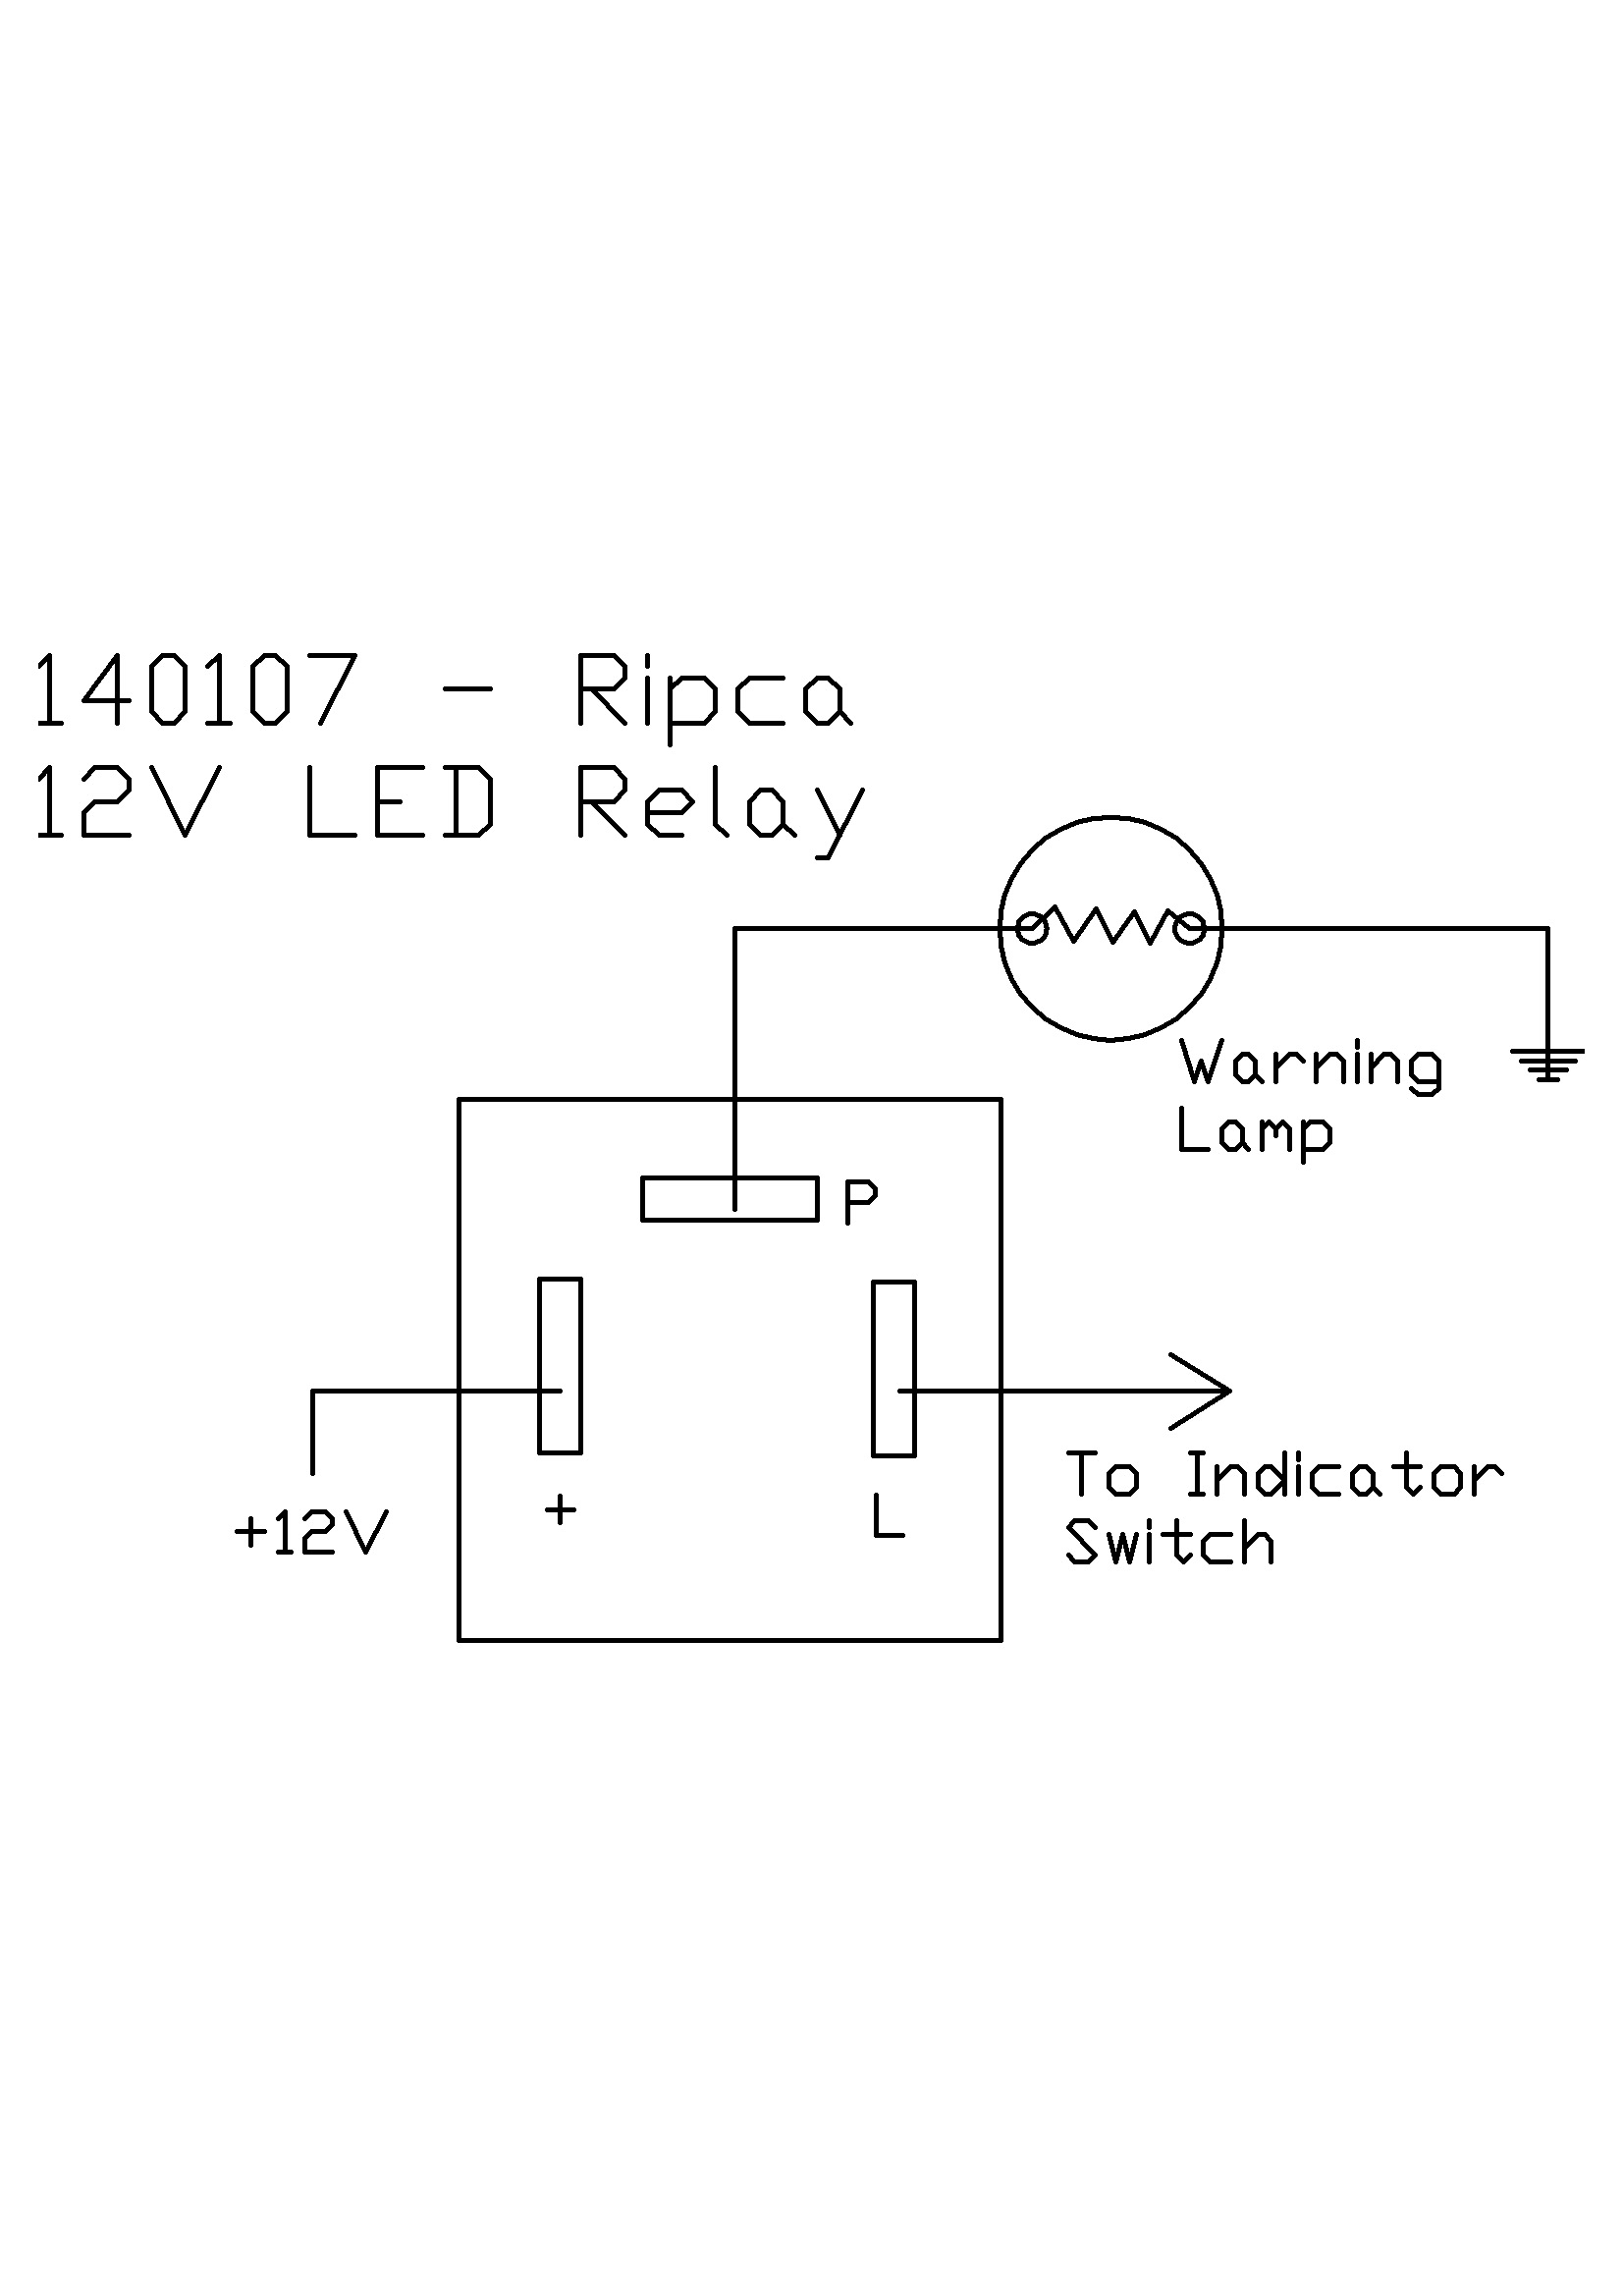 140107 ripca flasher wiring diagram 12v three prong flasher wiring \u2022 free 12v flasher circuit diagram at sewacar.co